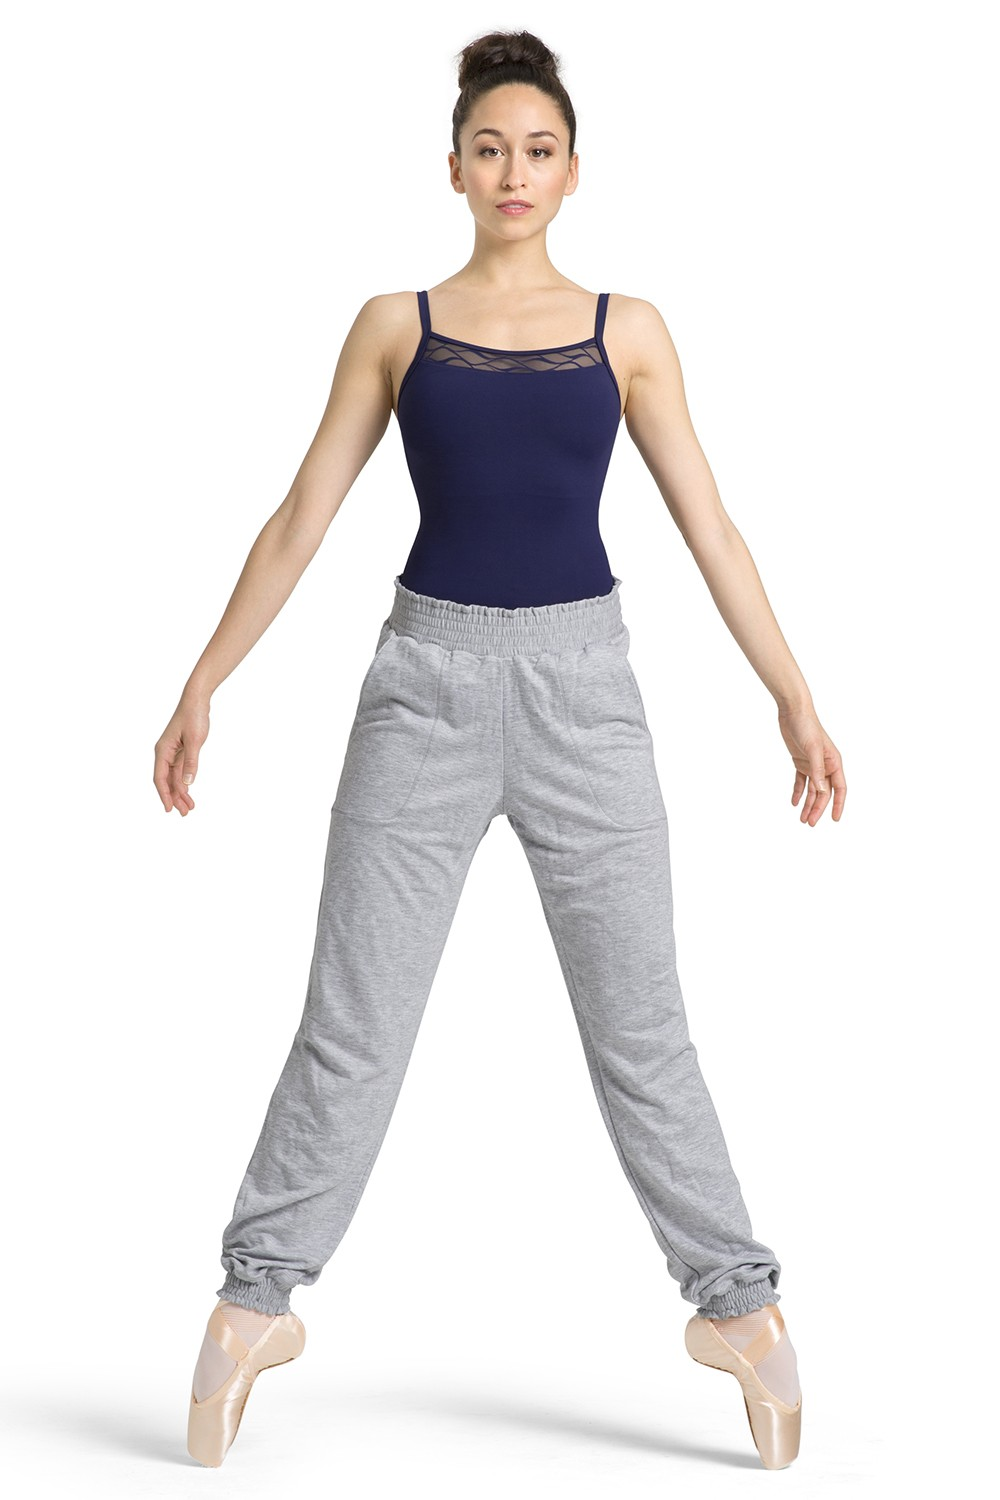 Pantaloni Con Bordi Arricciati Women's Dance Warmups